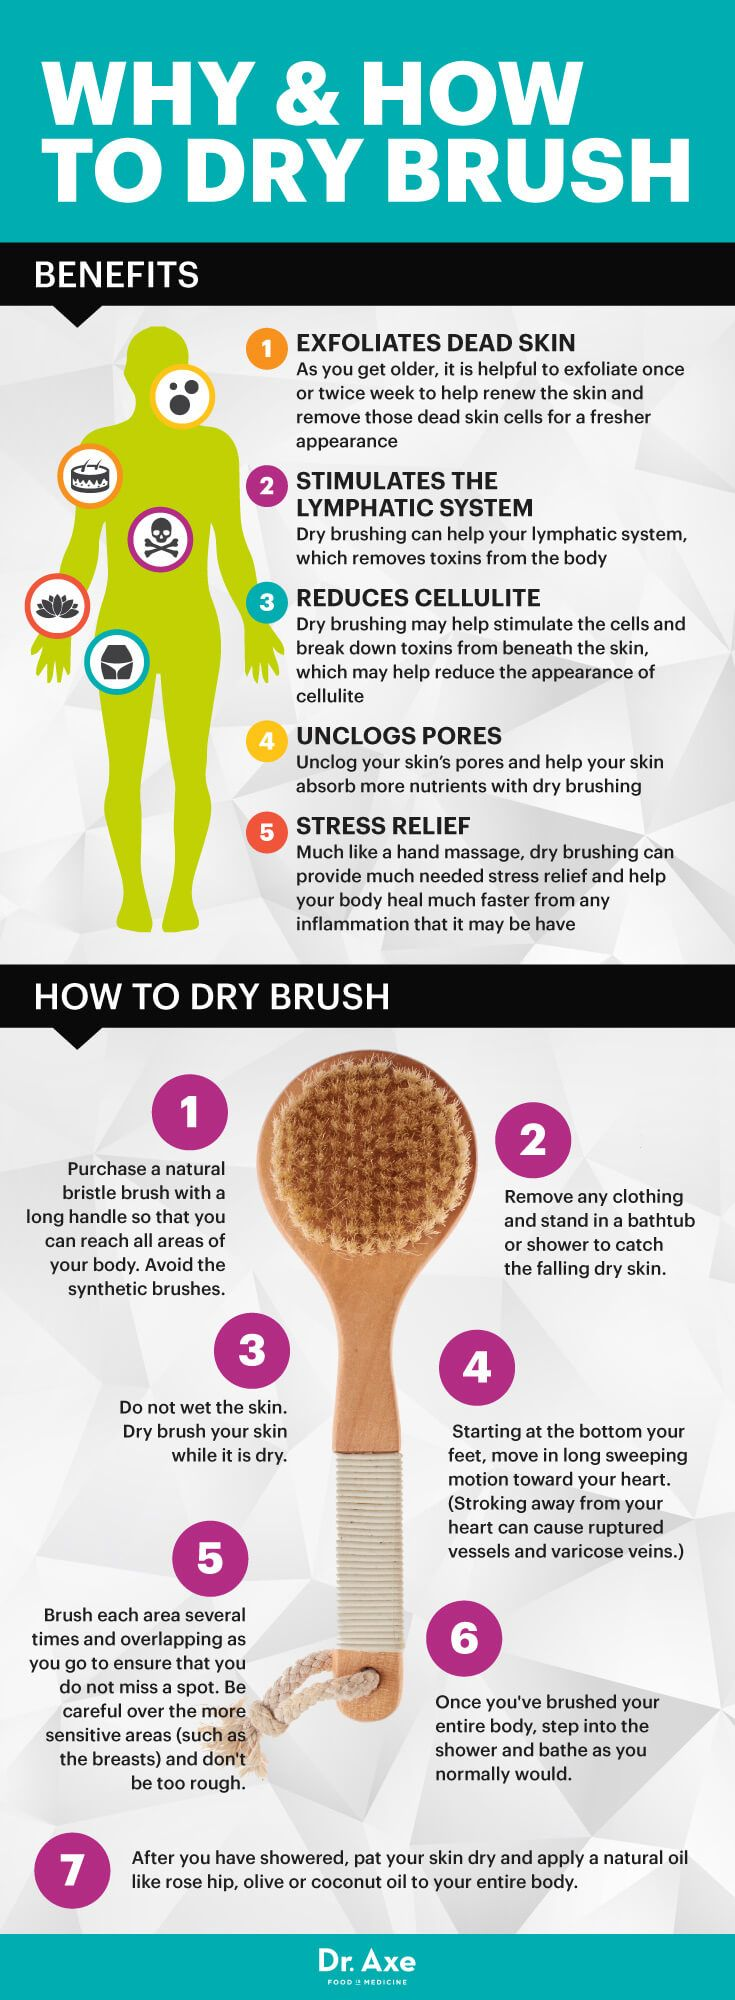 Dry brushing benefits | Dr. Axe http://www.draxe.com